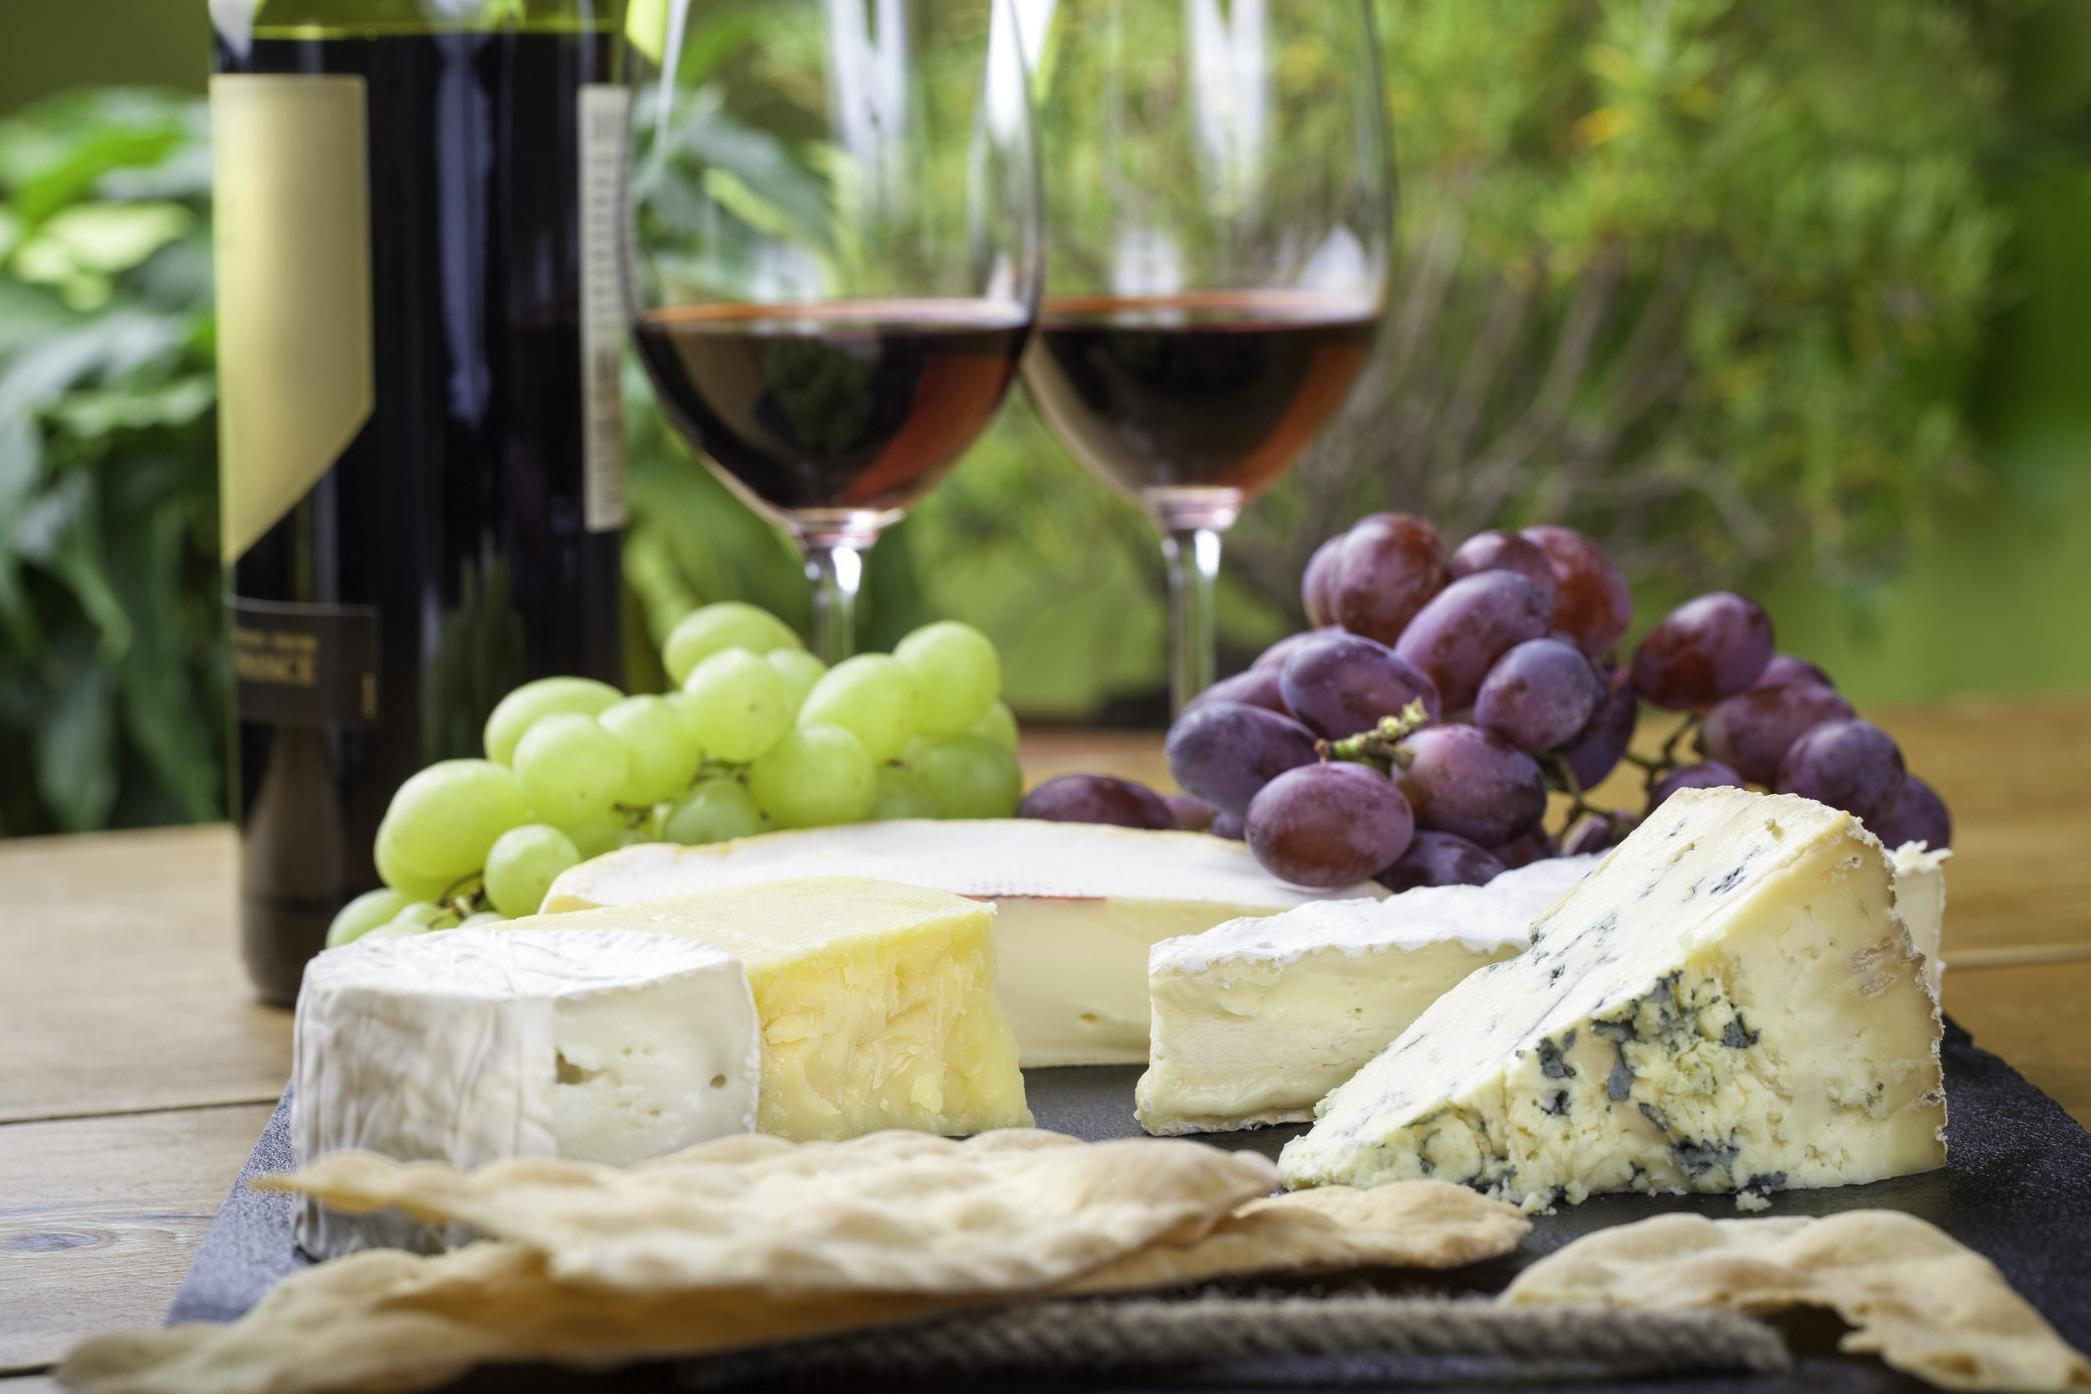 Why wine and cheese don't always go together, according to experts